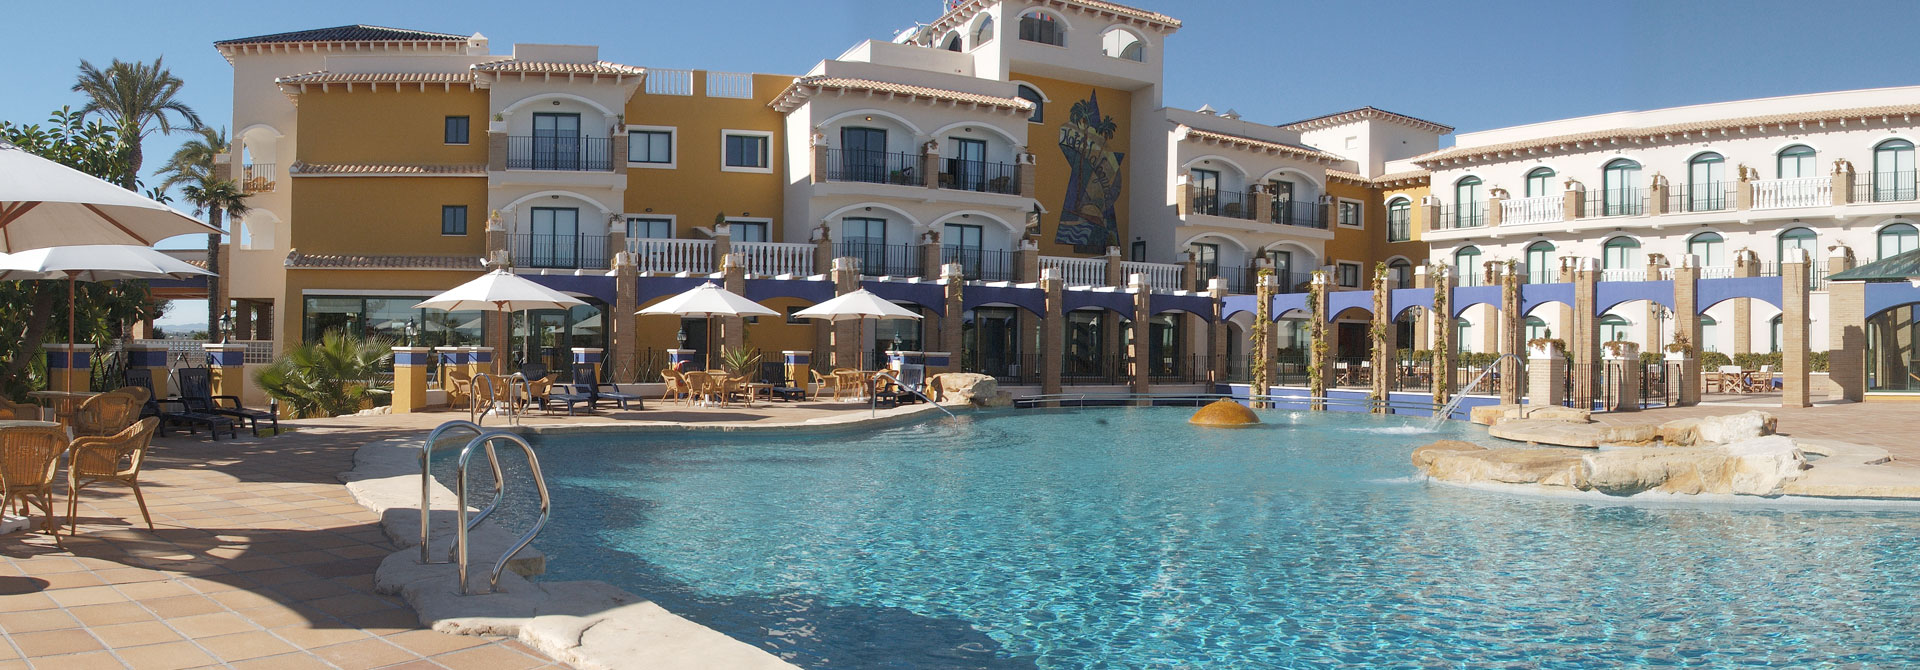 Hotel la laguna Torrevieja cycling holiday